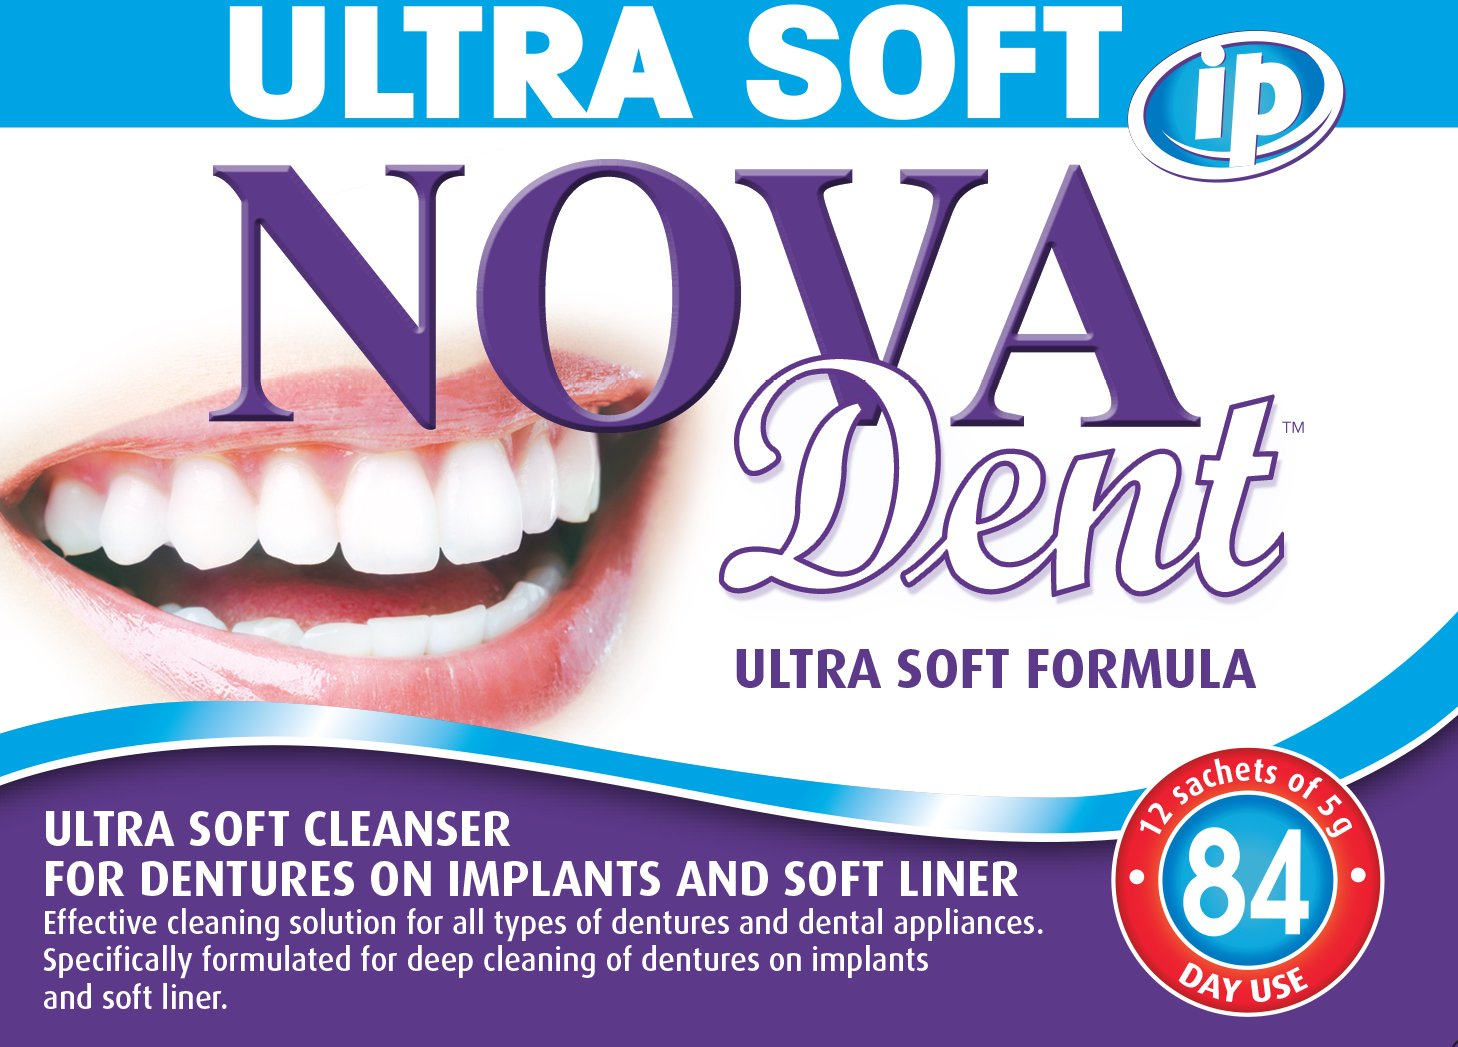 Novadent iP Ultra Soft | Dentures and dental appliances cleanser | 3 months (12 sachets) Novalab Canada inc.